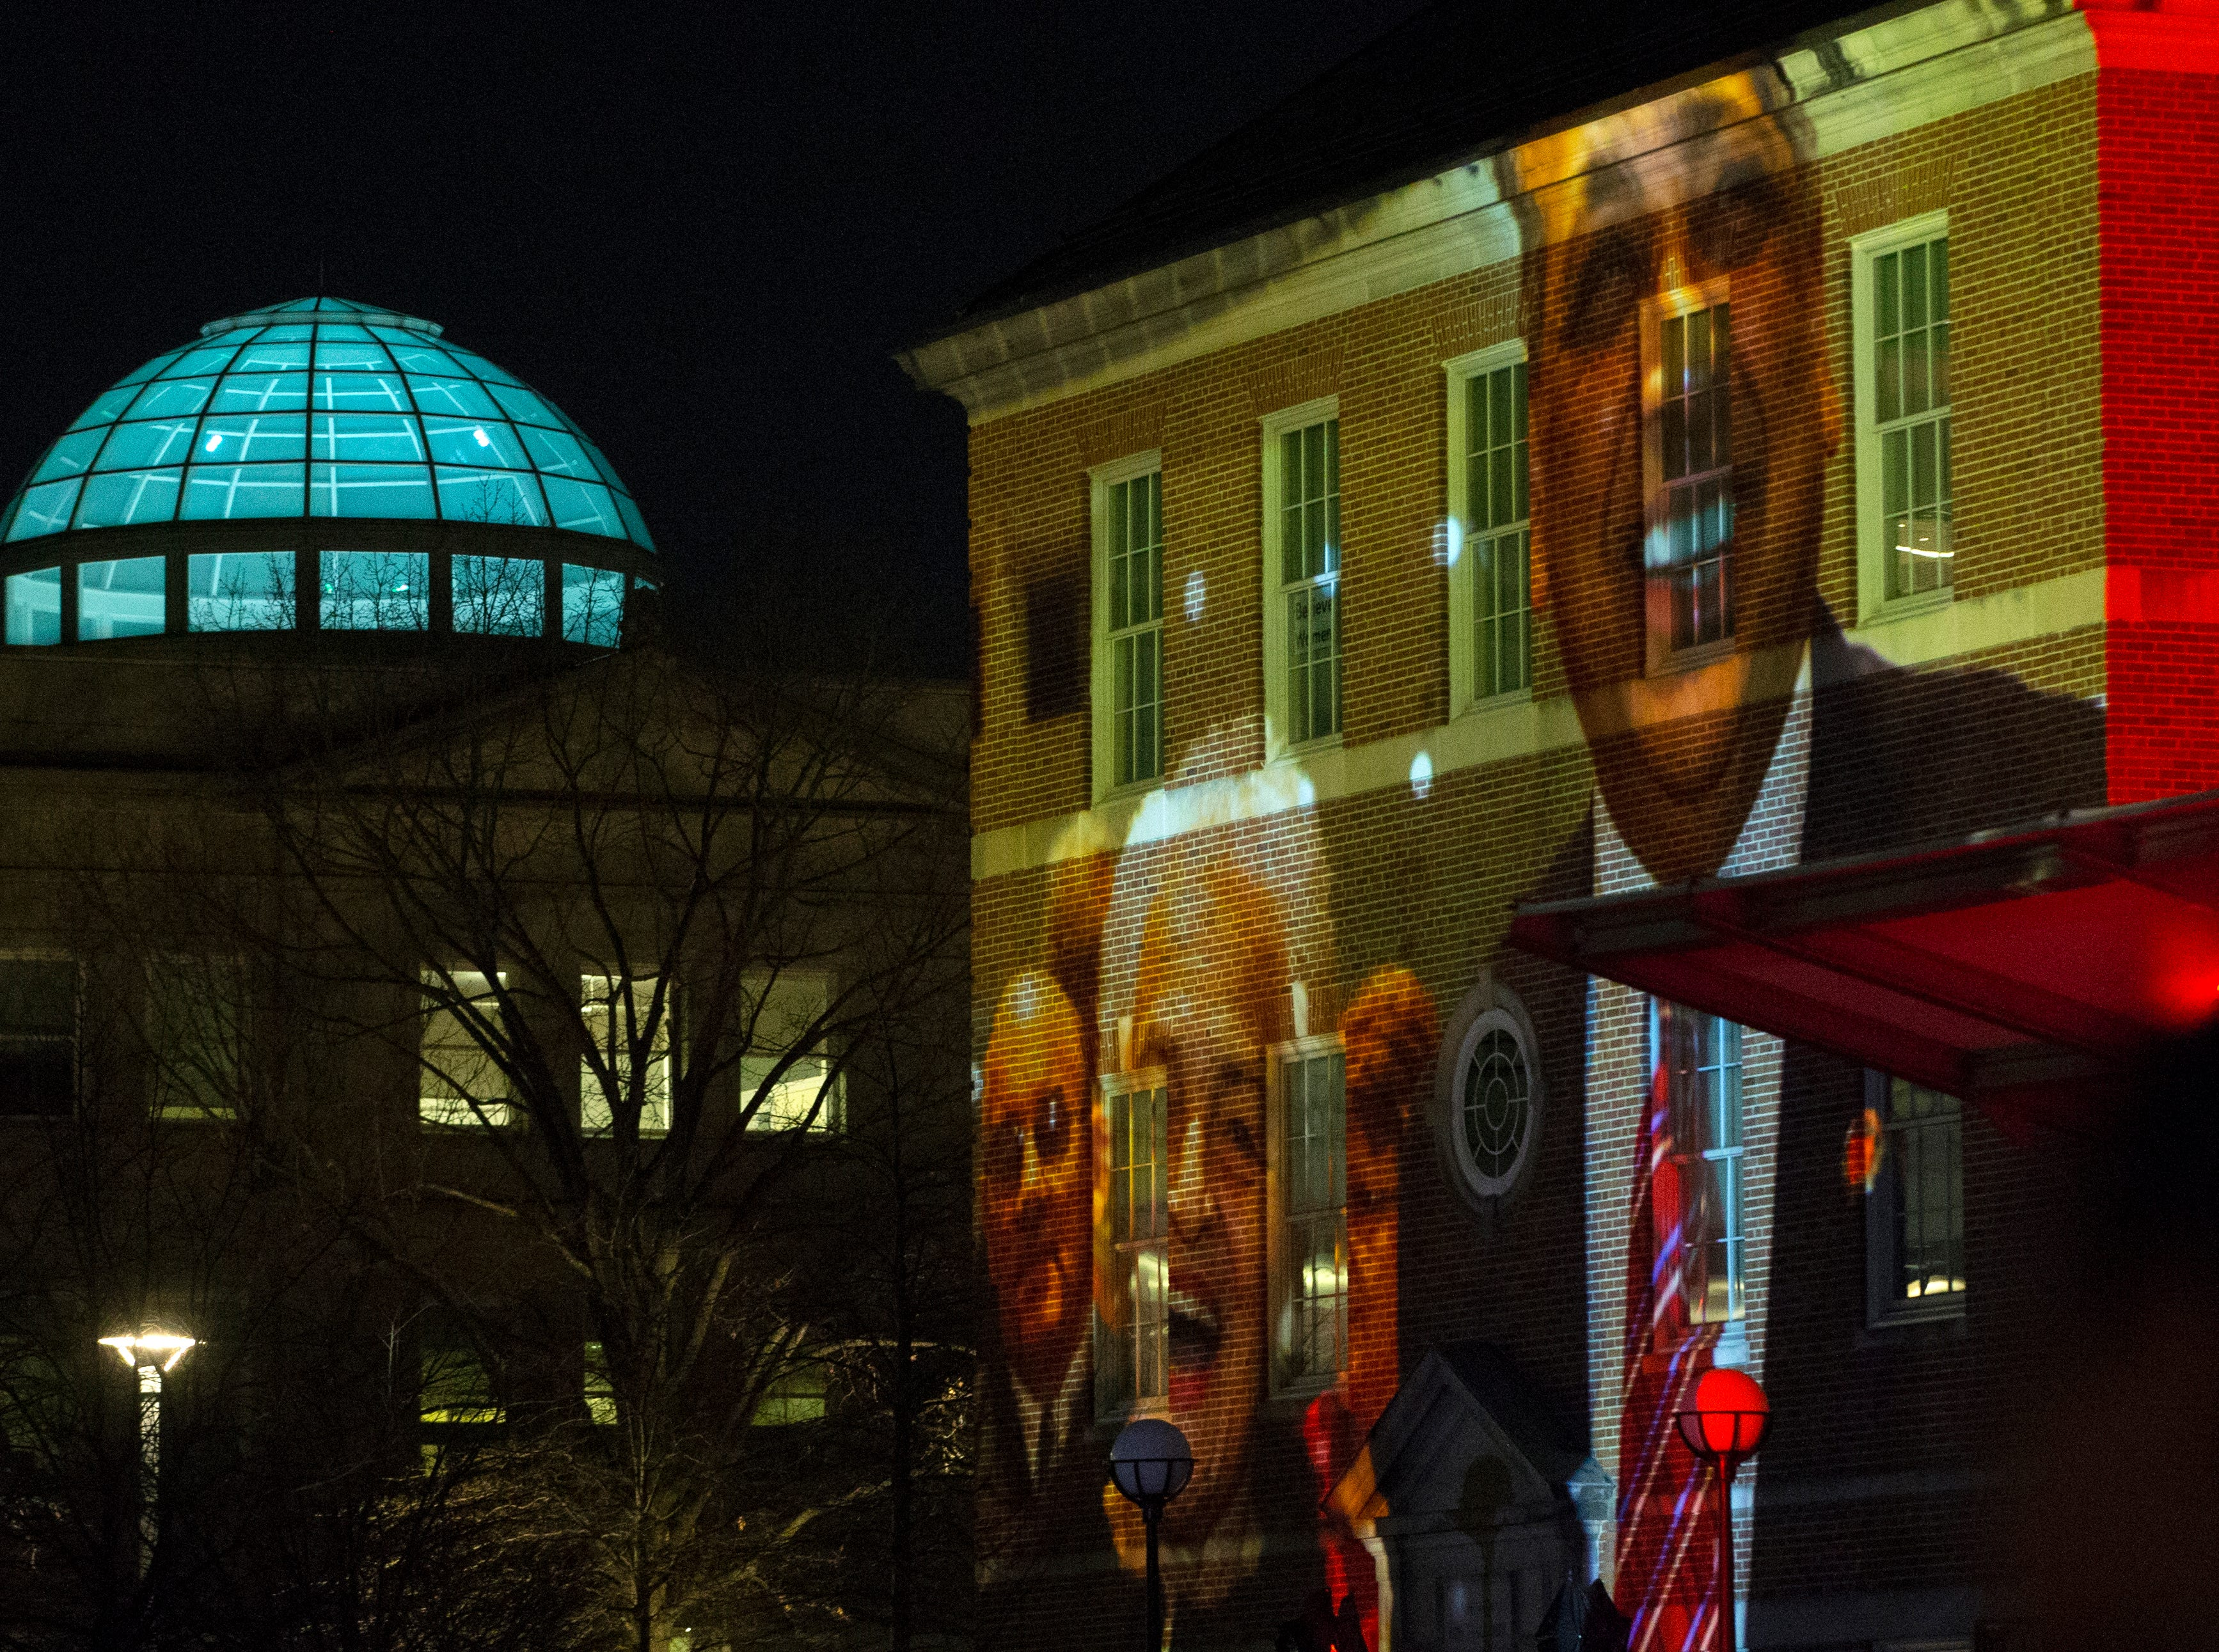 University of Cincinnati president Neville G. Pinto and Marian Spencer images displayed on McMicken Hall with Van Wormer Hall gleaming blue dome during Community Day to celebrate UC's Bicentennial Saturday April 6, 2019 at McMicken Commons on the campus of the University of Cincinnati. University of Cincinnati/Joseph Fuqua II